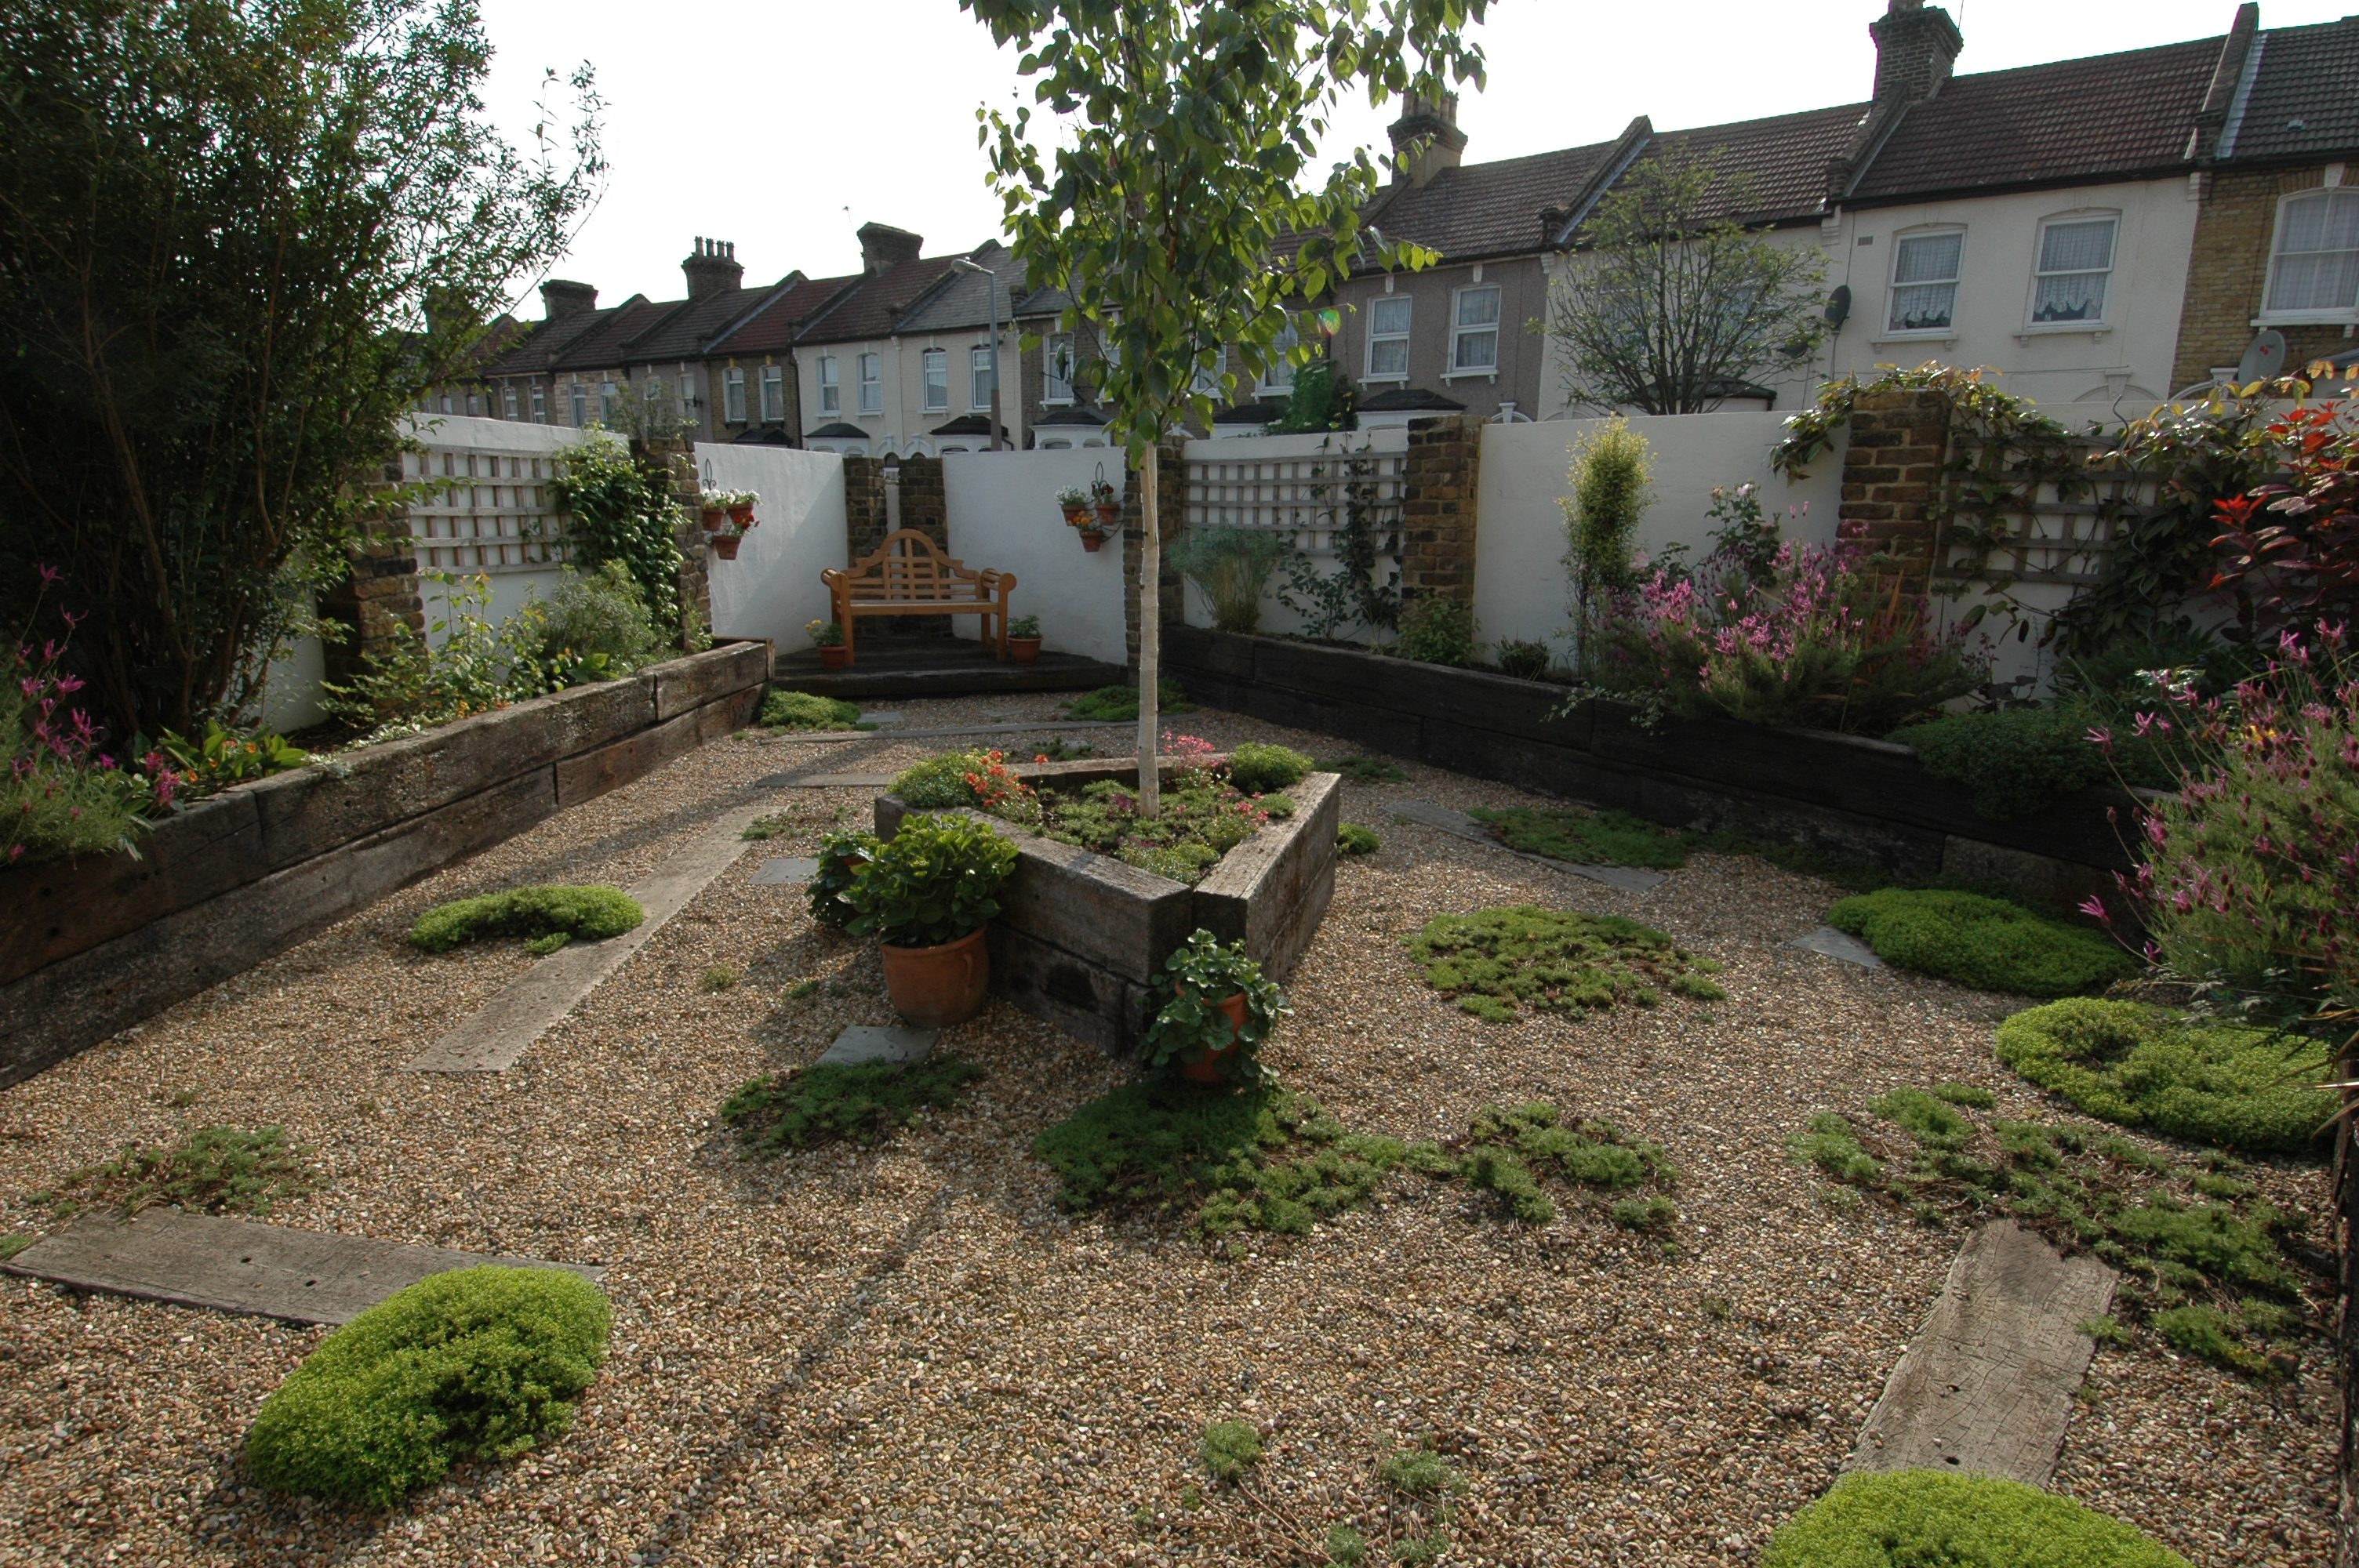 Garden layouts what suits my plot earth designs for Layout garden plots